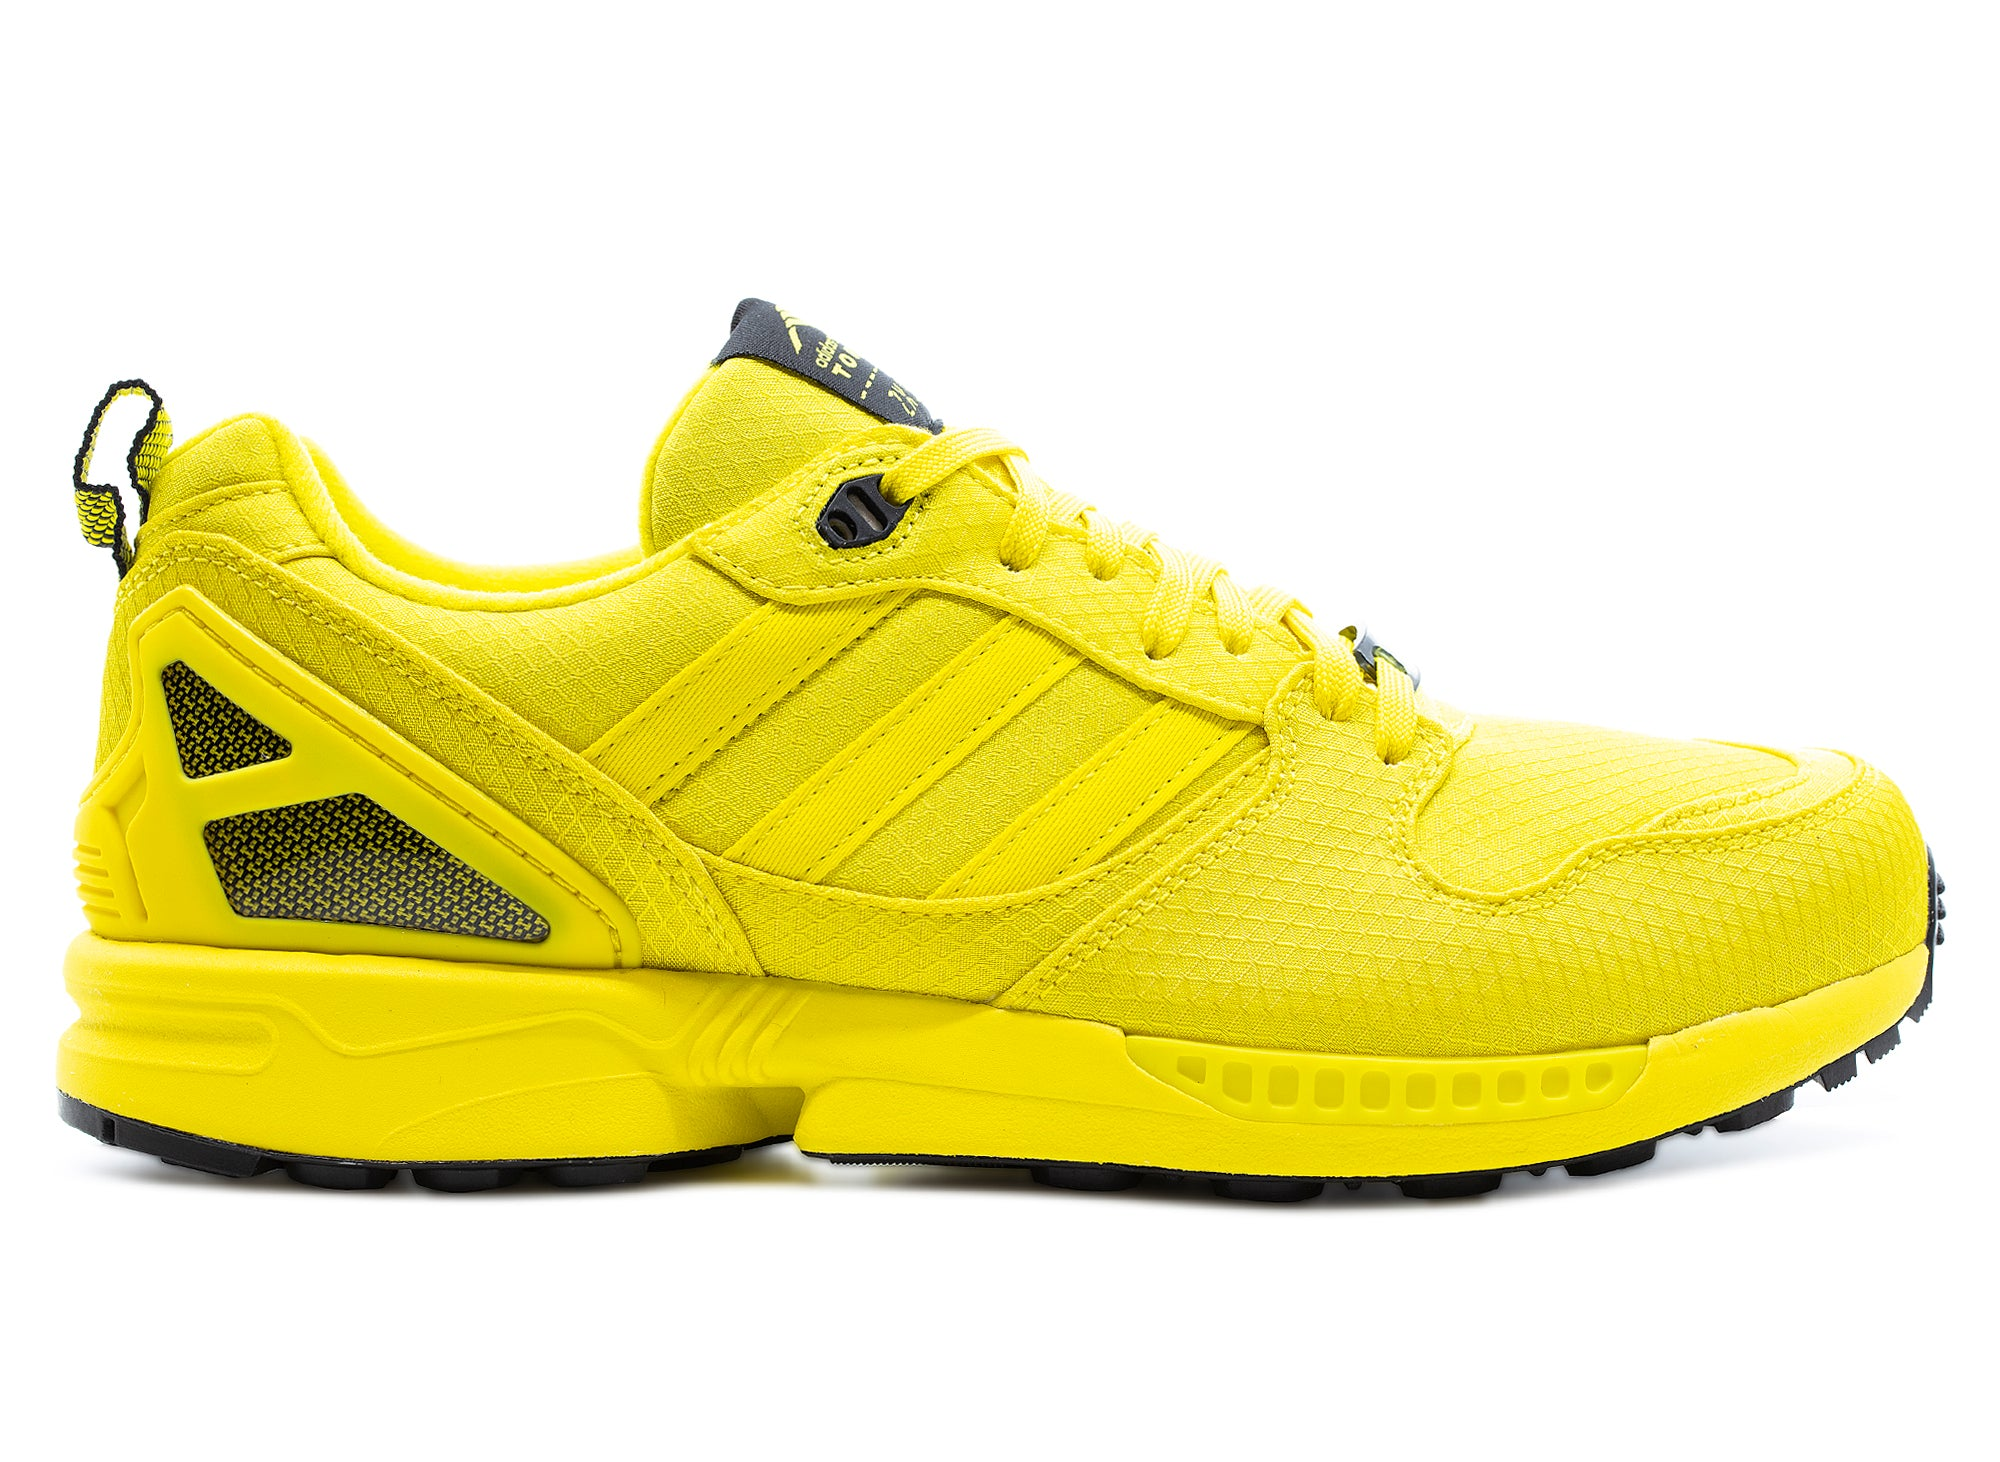 Adidas ZX 5000 Torsion A-ZX Series 'Bright Yellow' xld